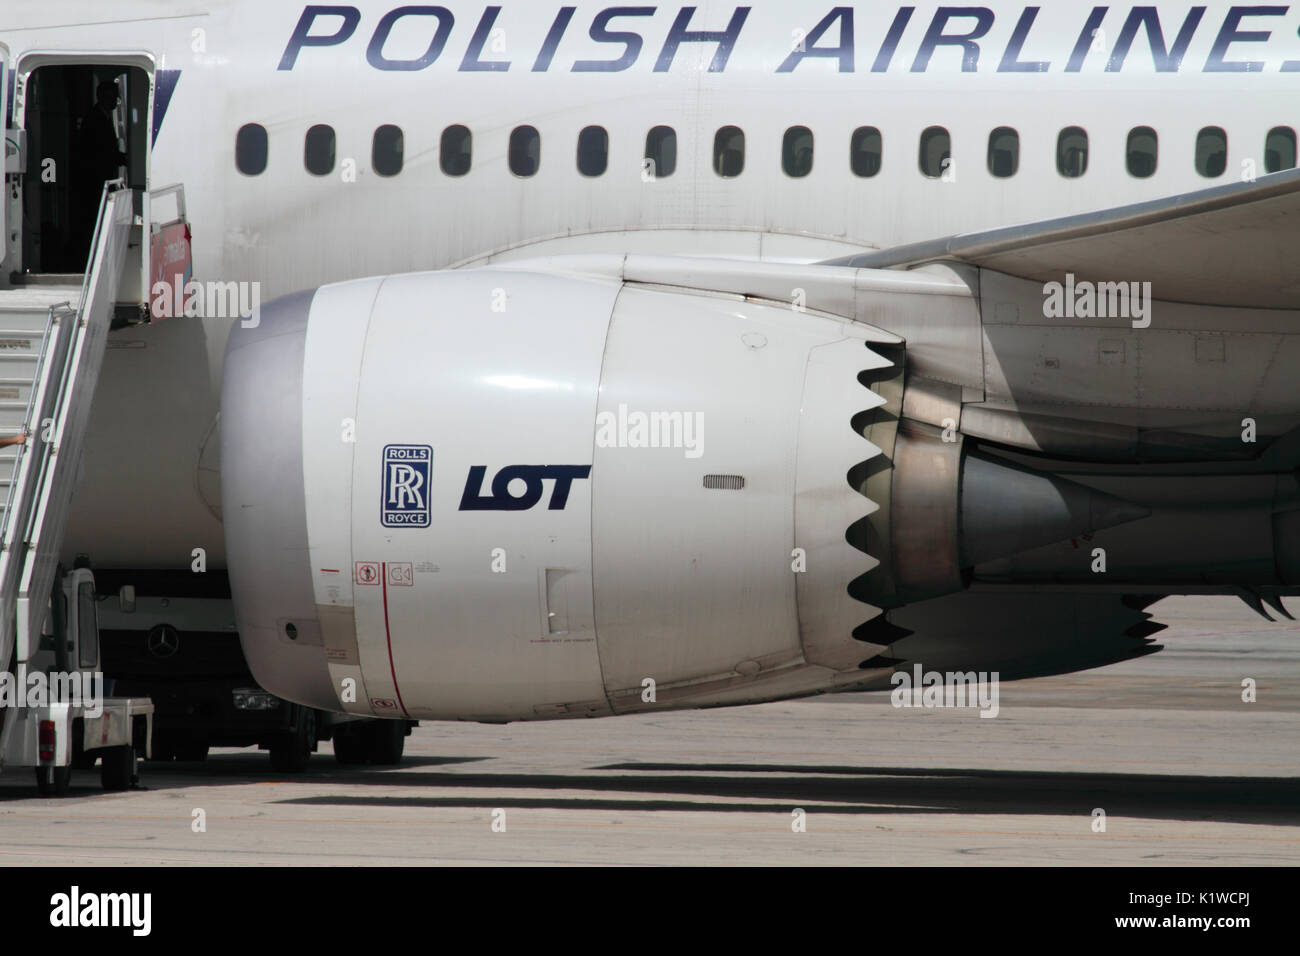 LOT Polish Airlines Boeing 787 Dreamliner jet engine nacelle with its characteristic scalloped edge. The engine is a Rolls-Royce Trent 1000 turbofan. - Stock Image